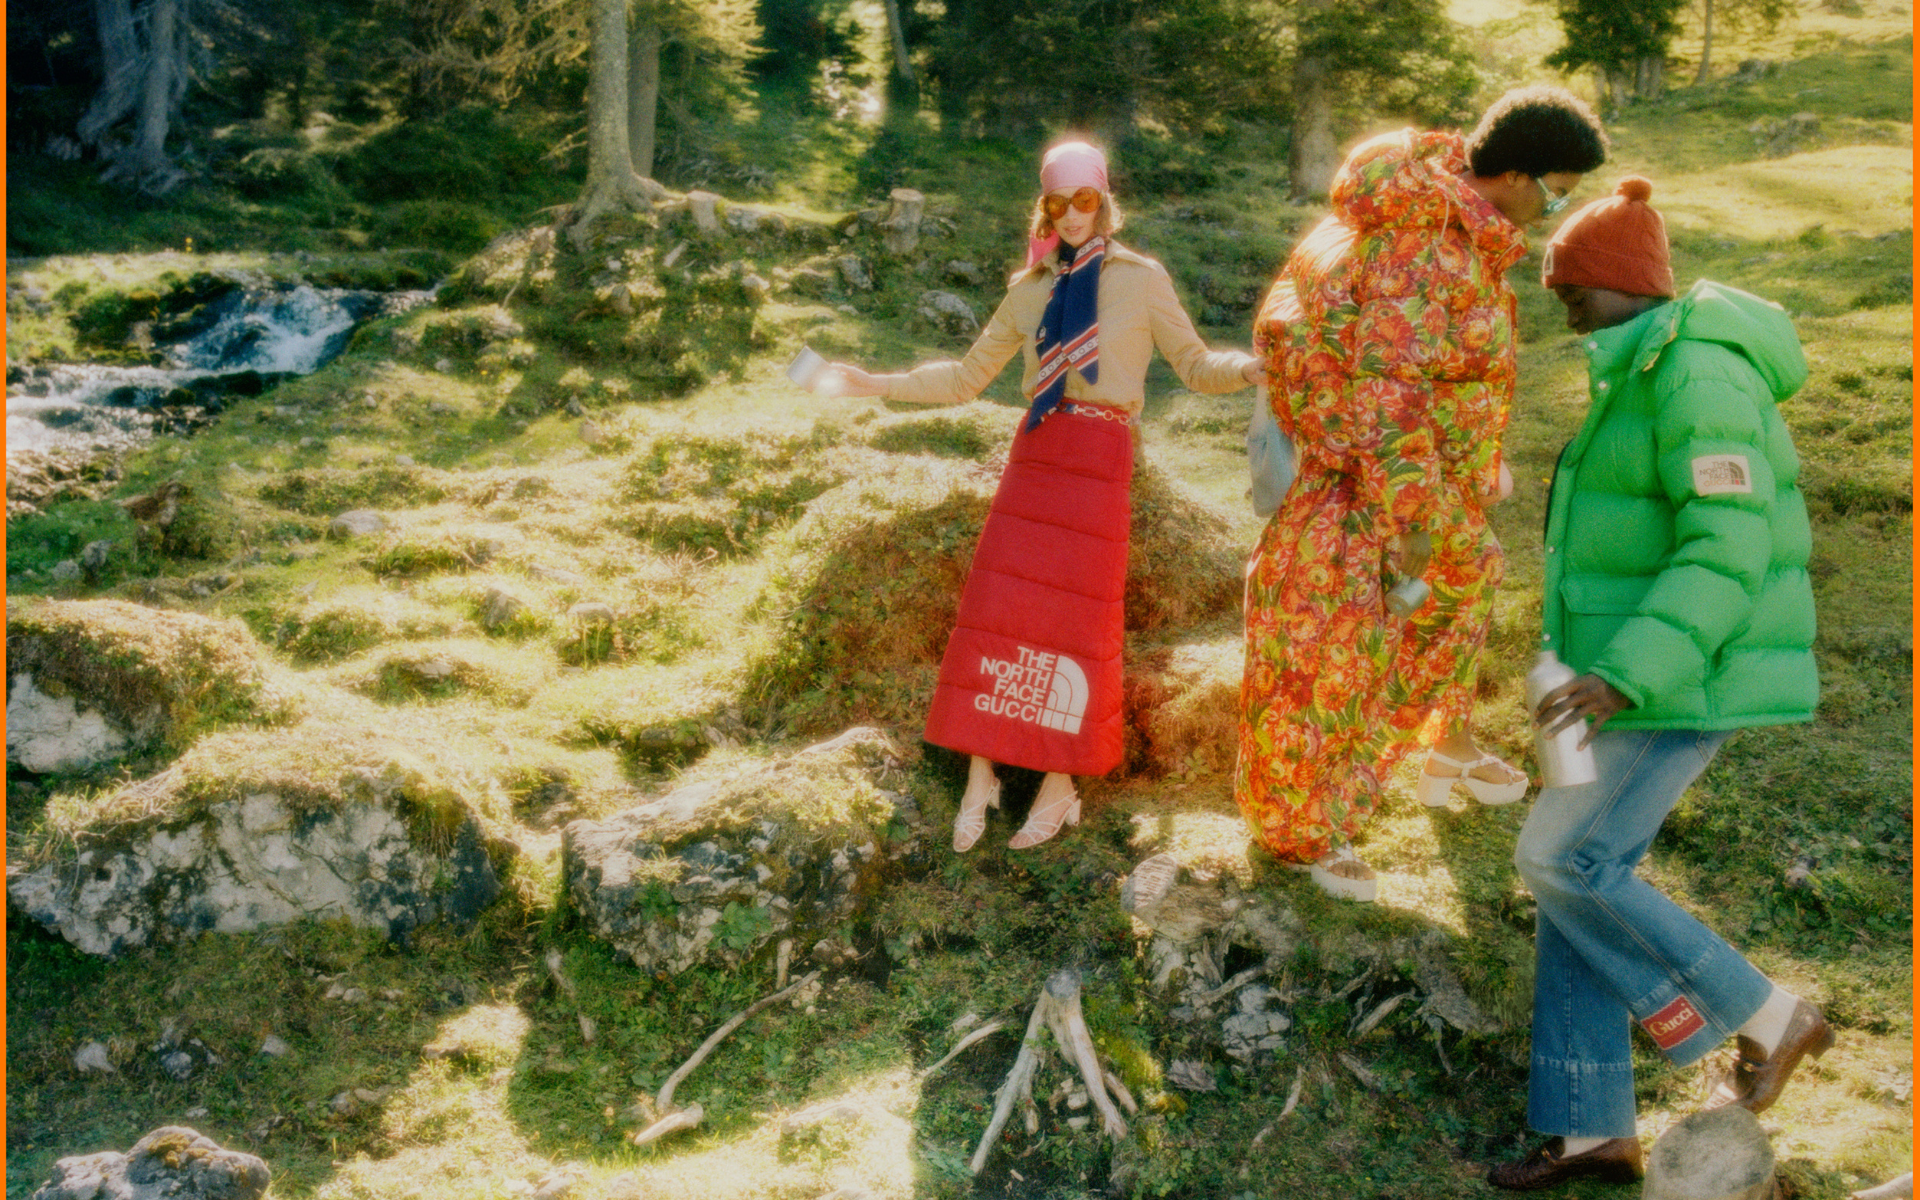 Gucci Ventures Into The Great Outdoors With The North Face